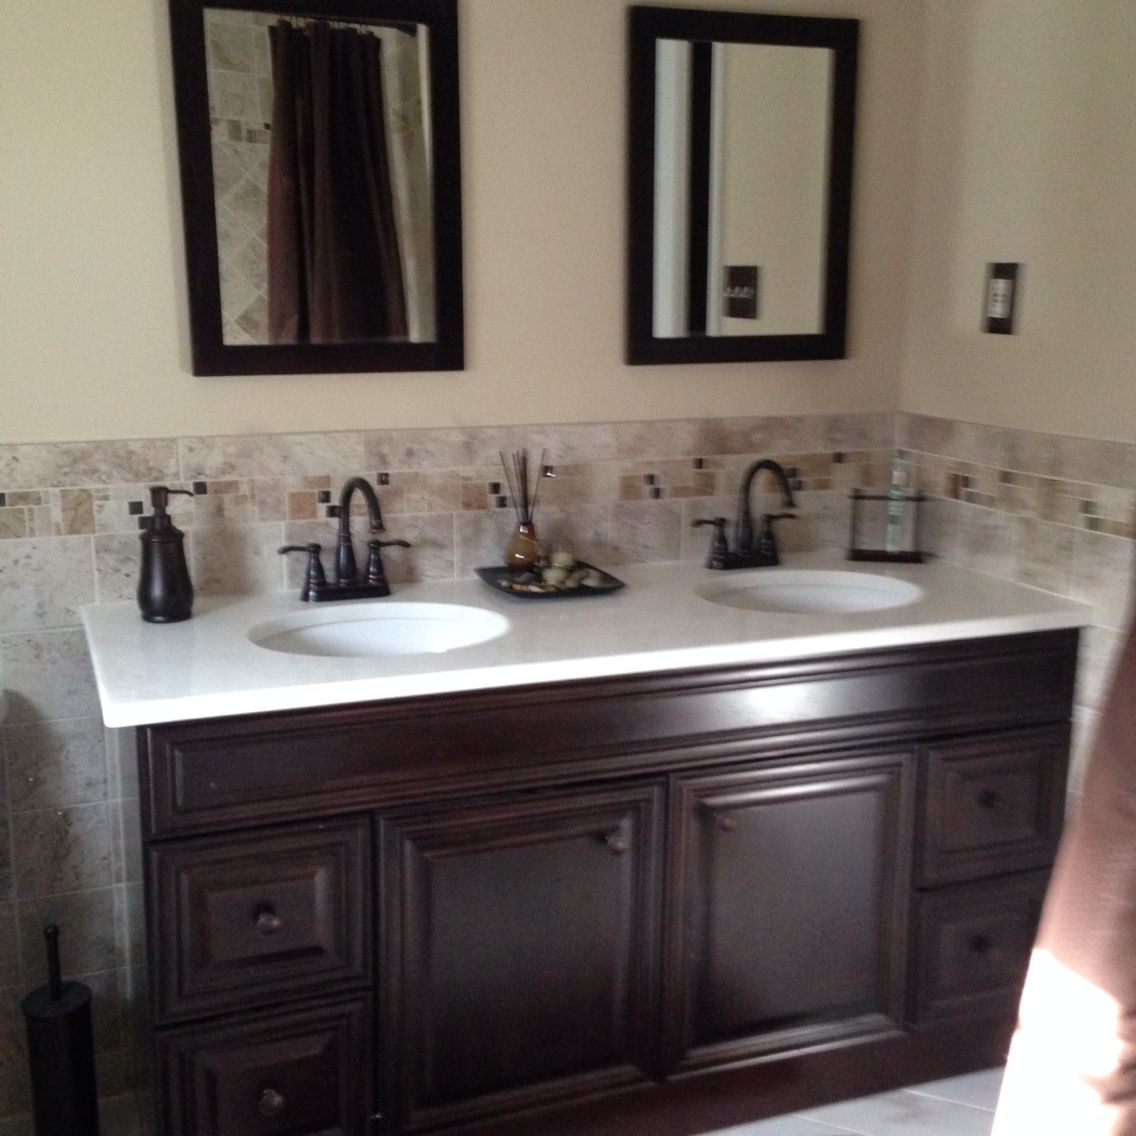 Remodeled Bathroom Manchester Tan Paint On Walls Cabinet